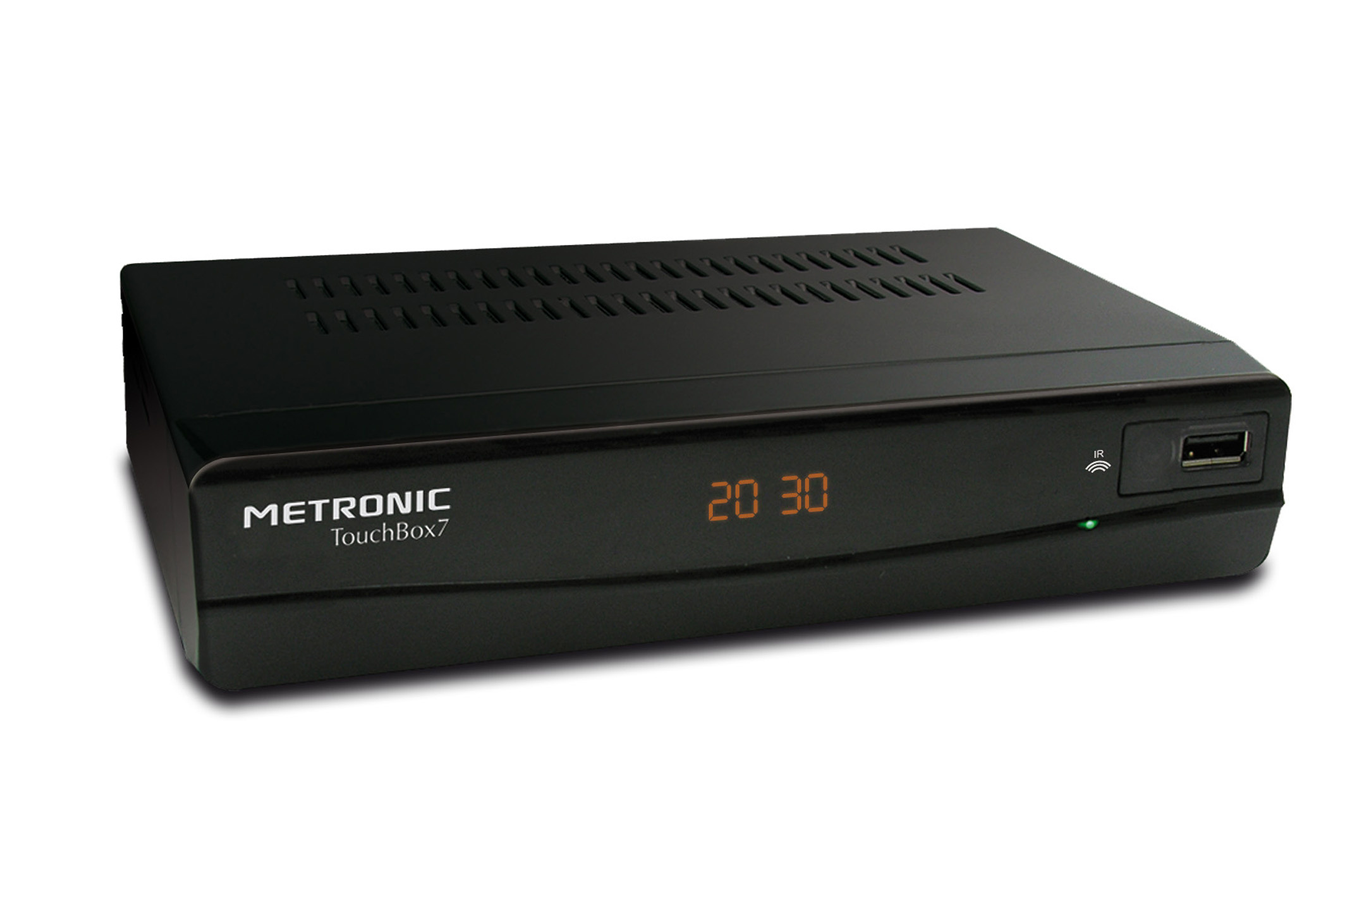 decodeur satellite metronic touchbox7 pvr 441333 3775577 darty. Black Bedroom Furniture Sets. Home Design Ideas